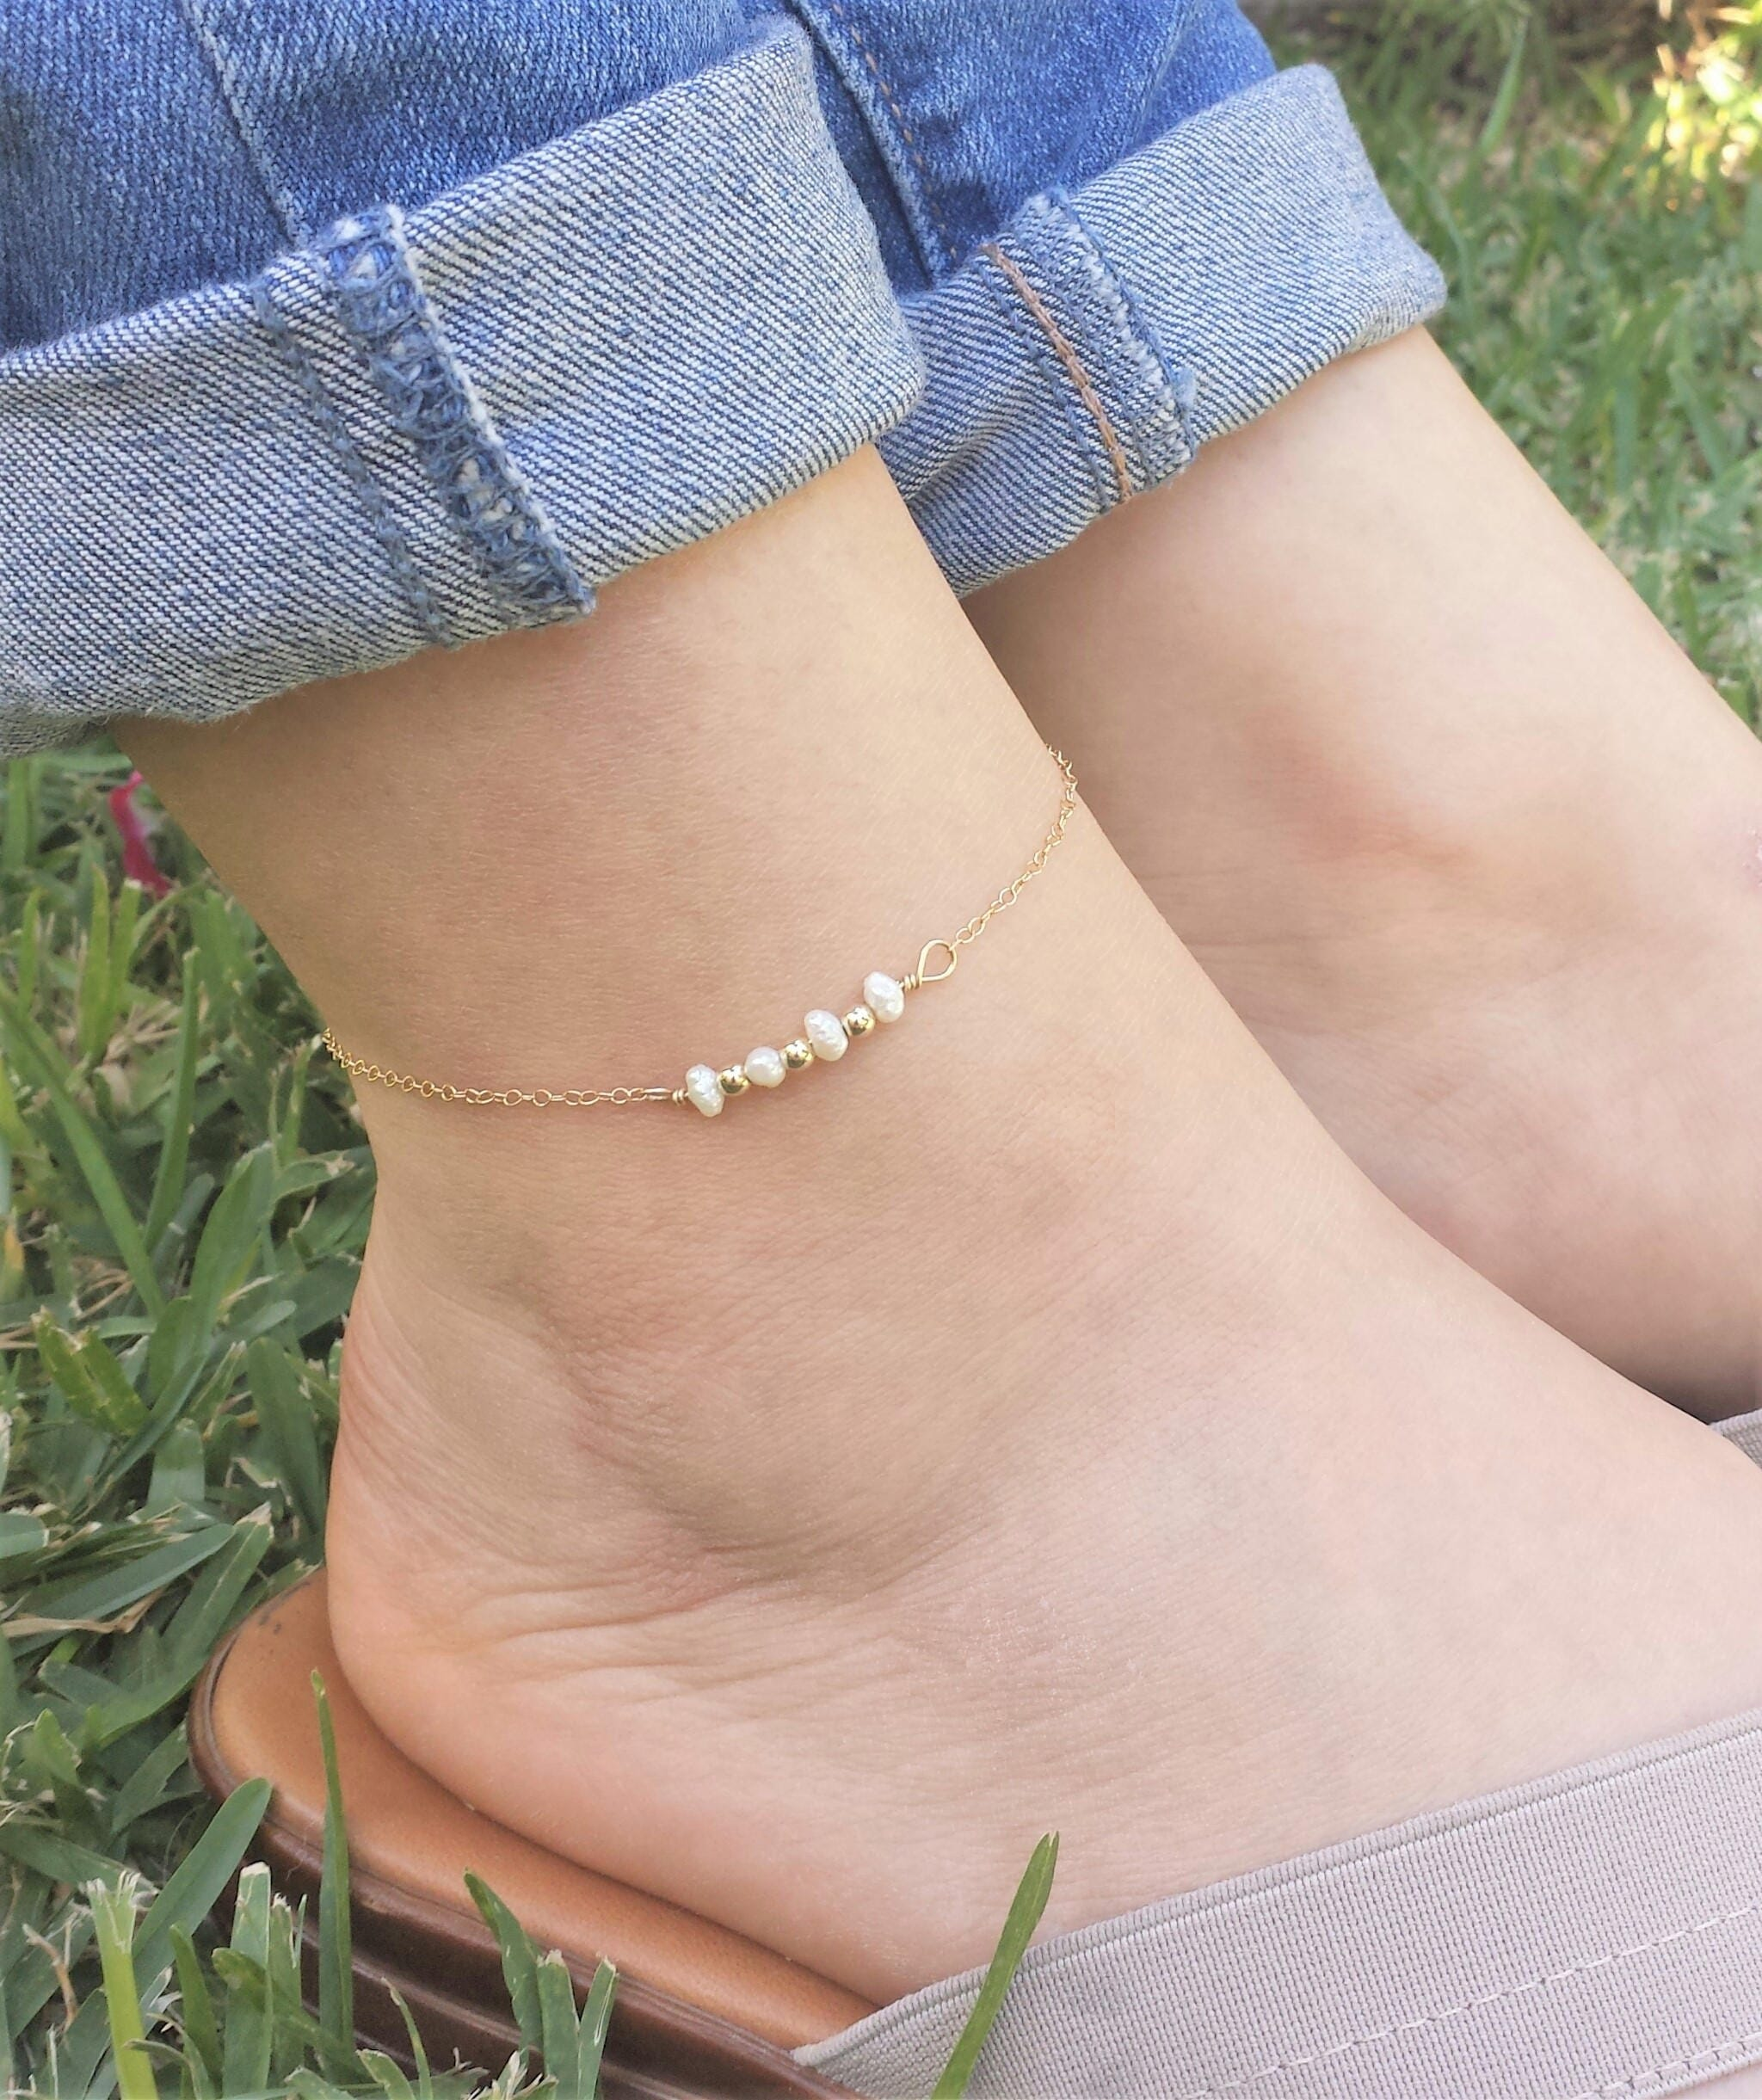 mighty bracelet gps ankle simple eternity jewelry anklet amazing bracelets from jewelryrosy tracker